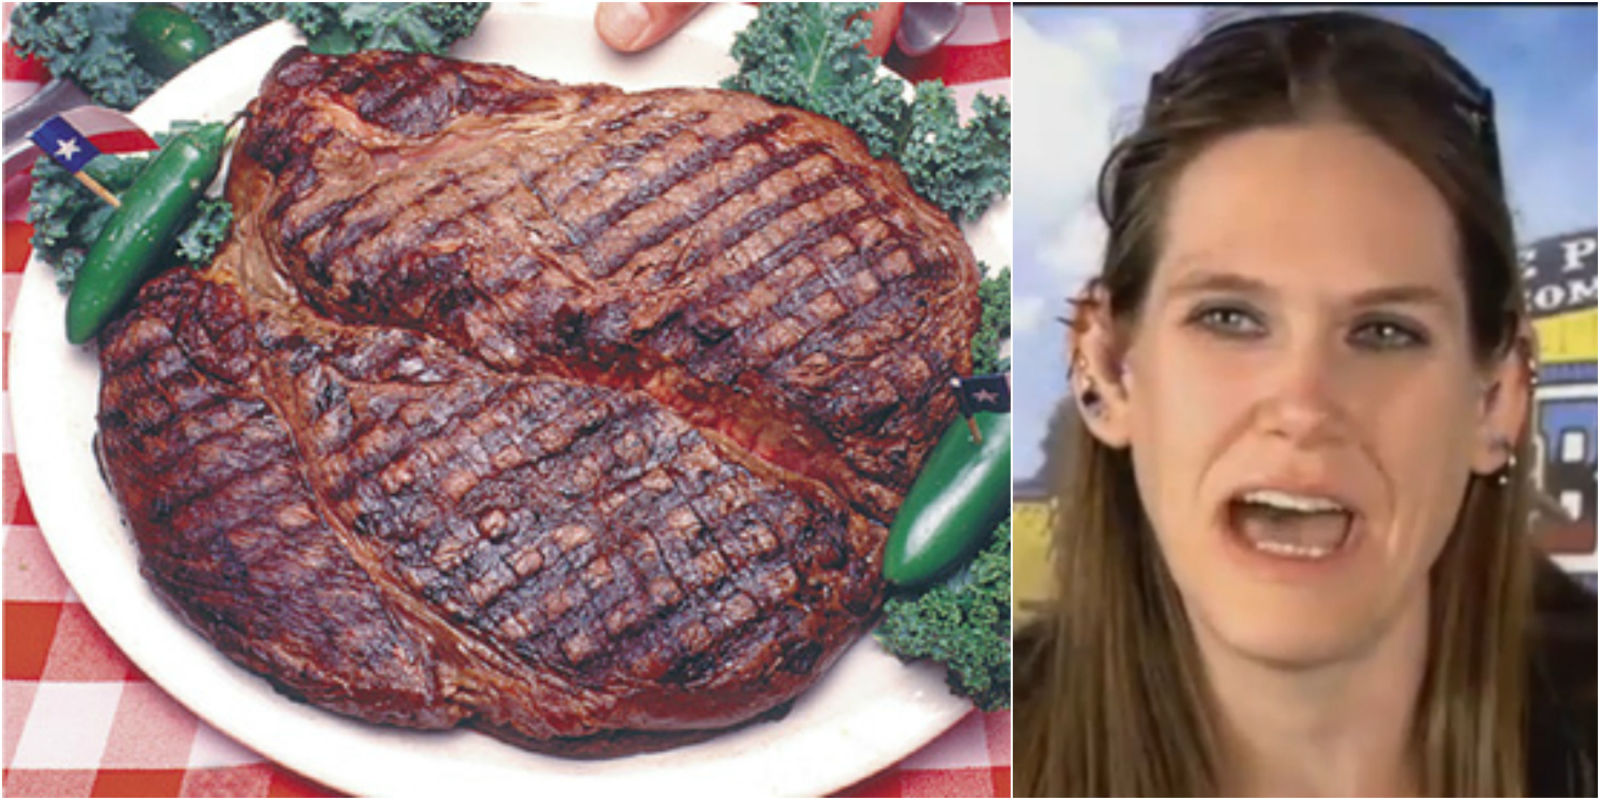 Woman Wins Contest By Eating Three 72 Ounce Steaks In